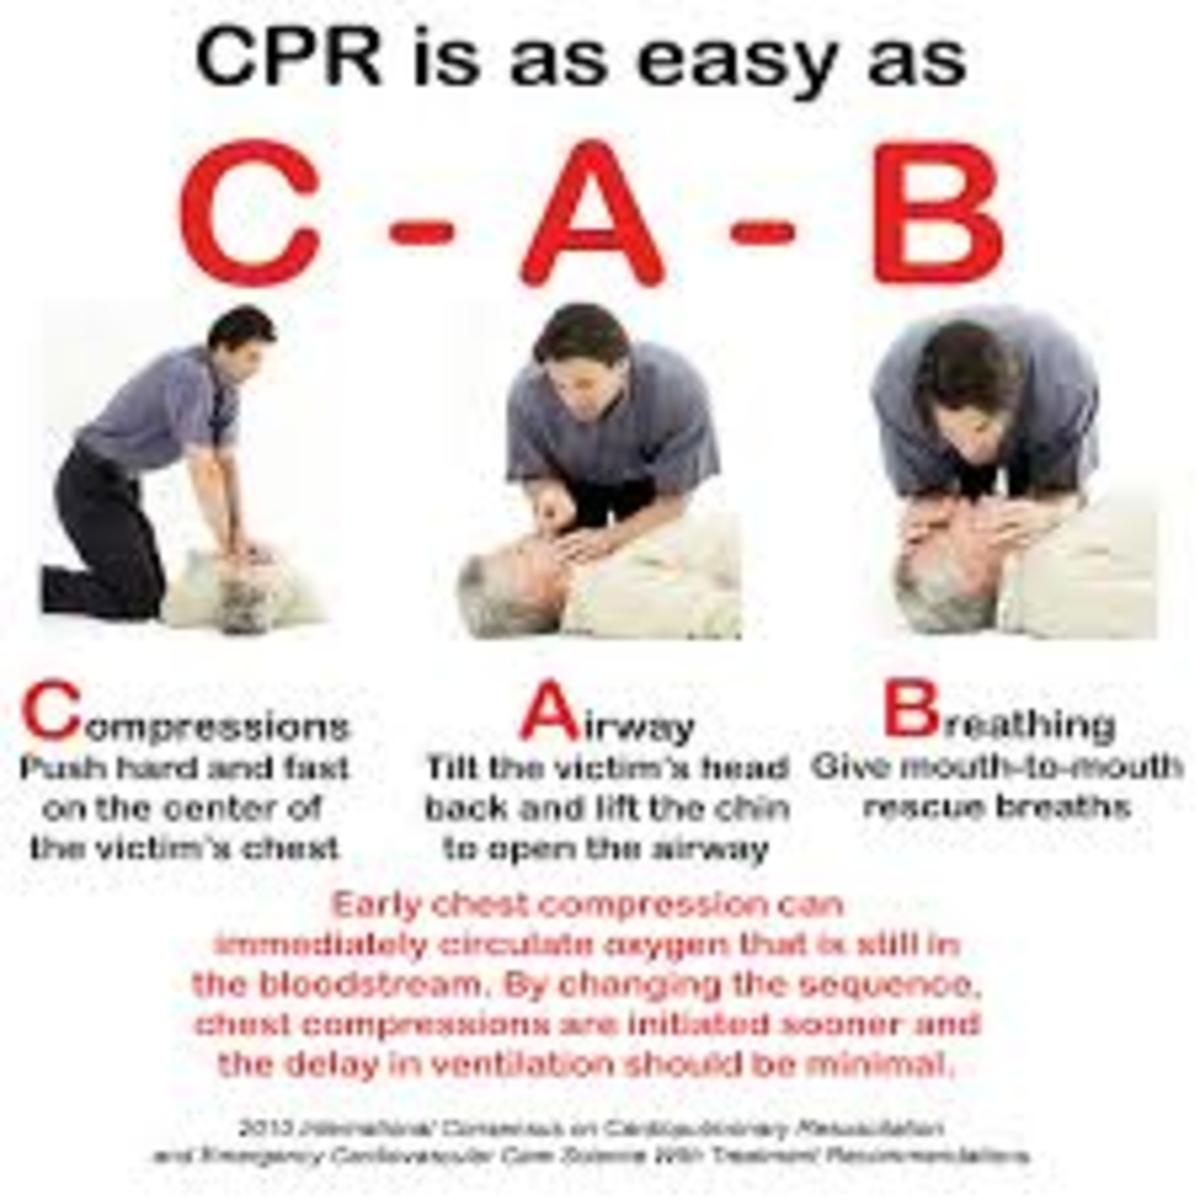 Learn Cardiopulmonary Resuscitation Steps - CPR Information